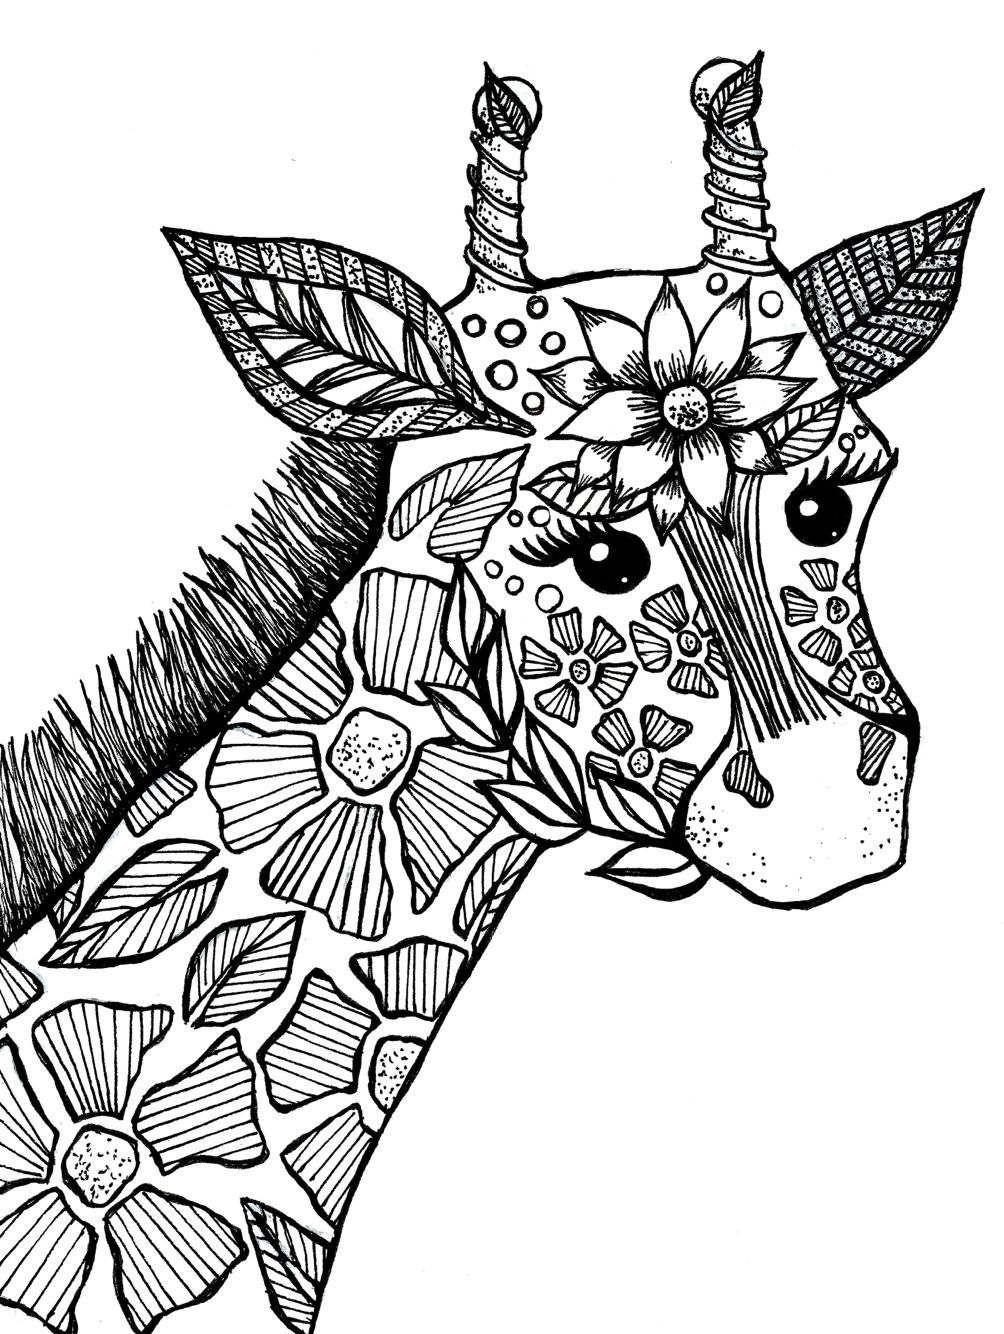 Giraffe Adult Coloring Book Page